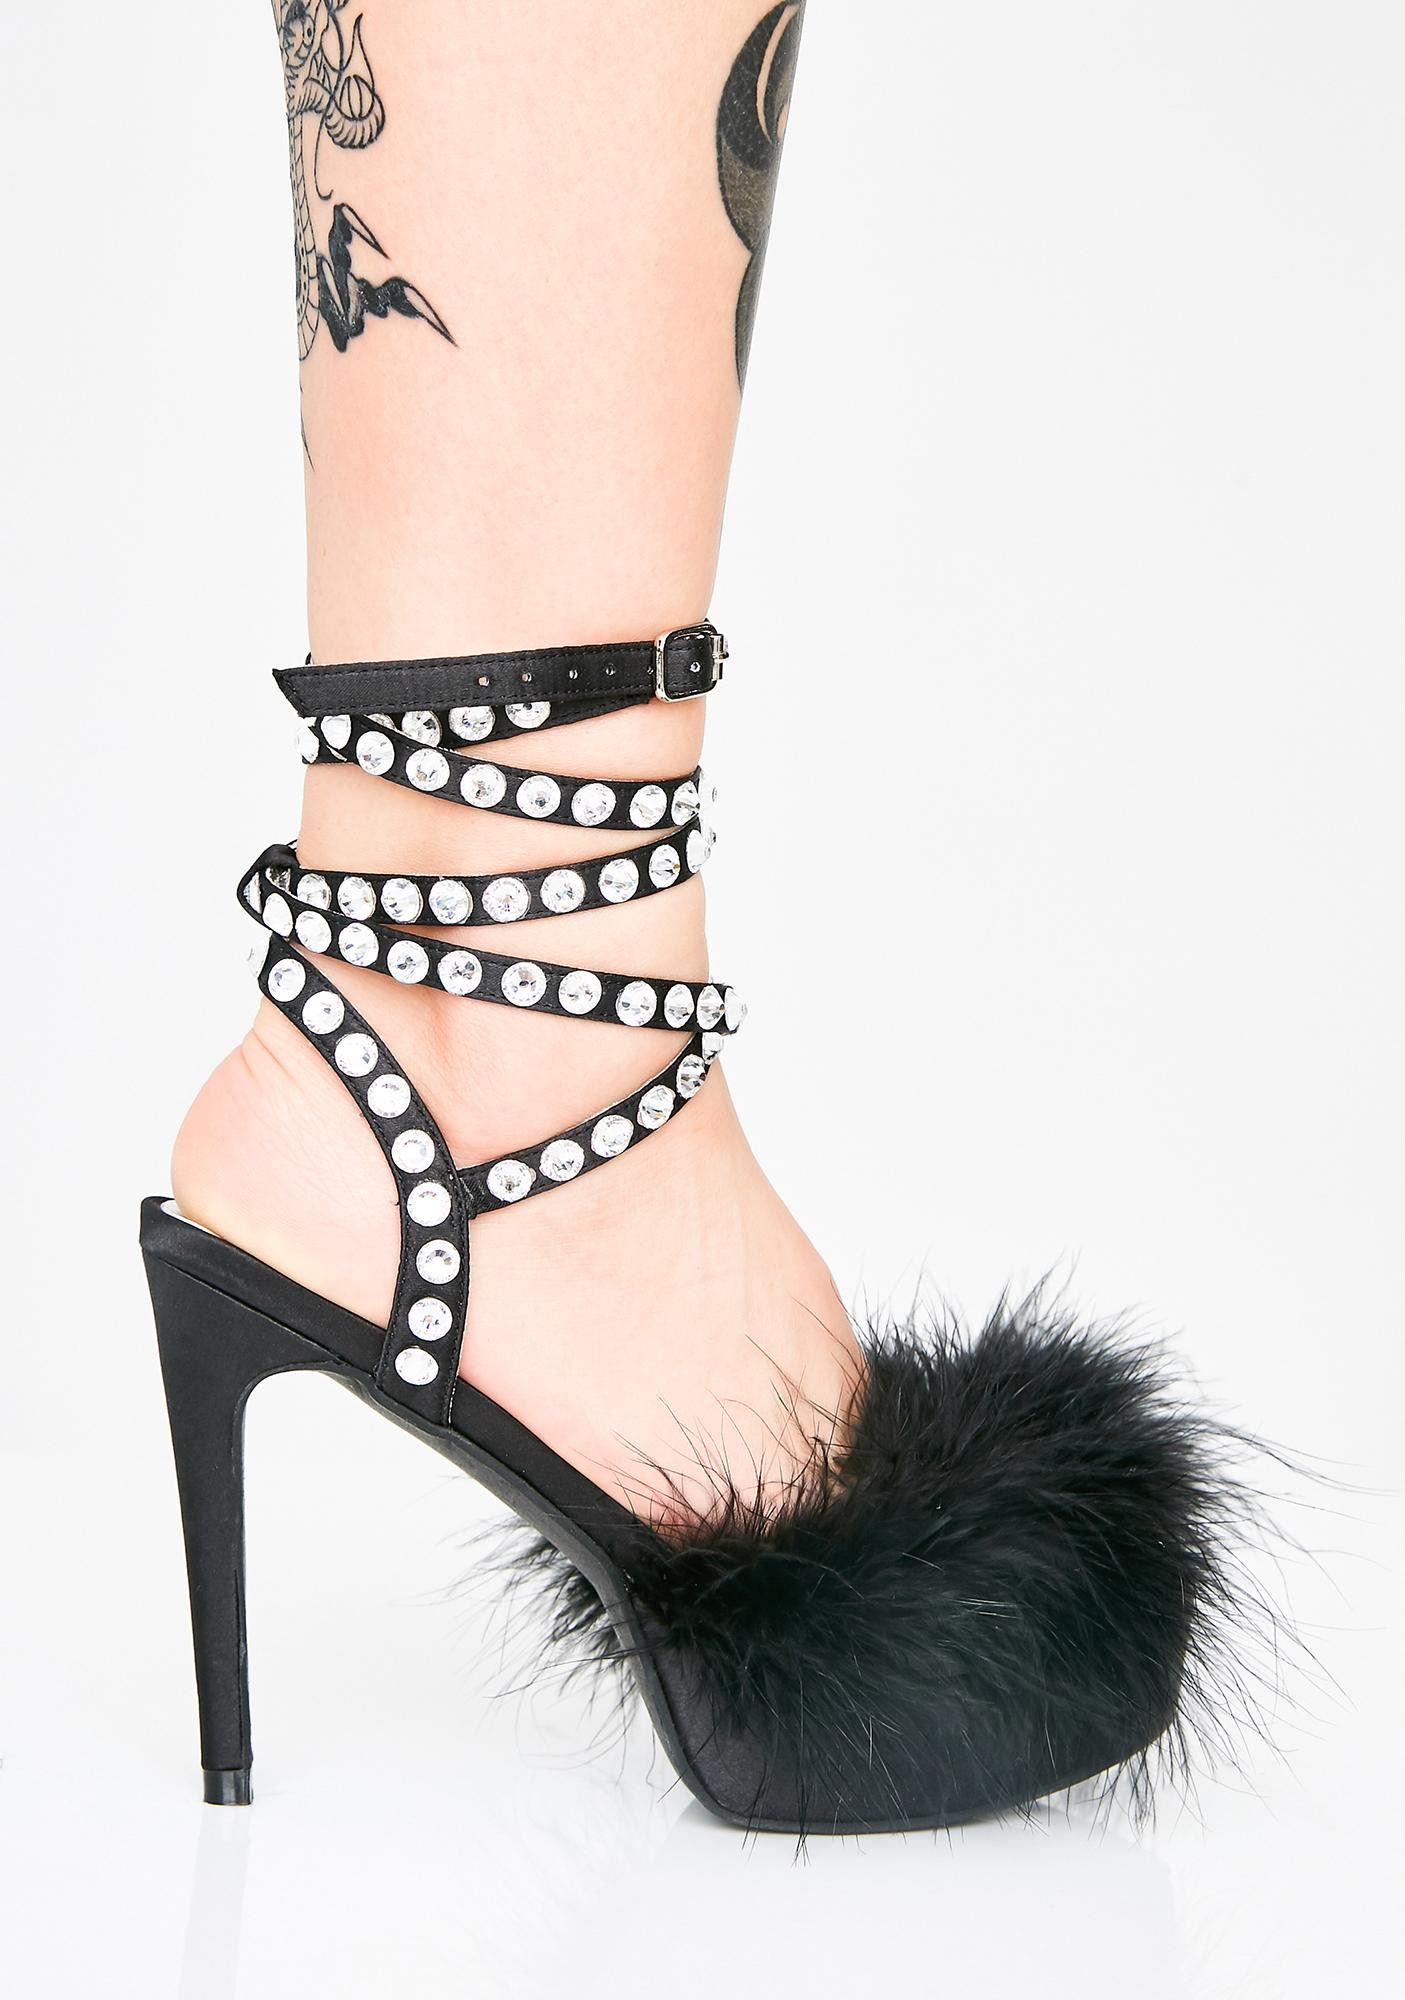 Sugar Thrillz Night Life Of Luxury Marabou Heels